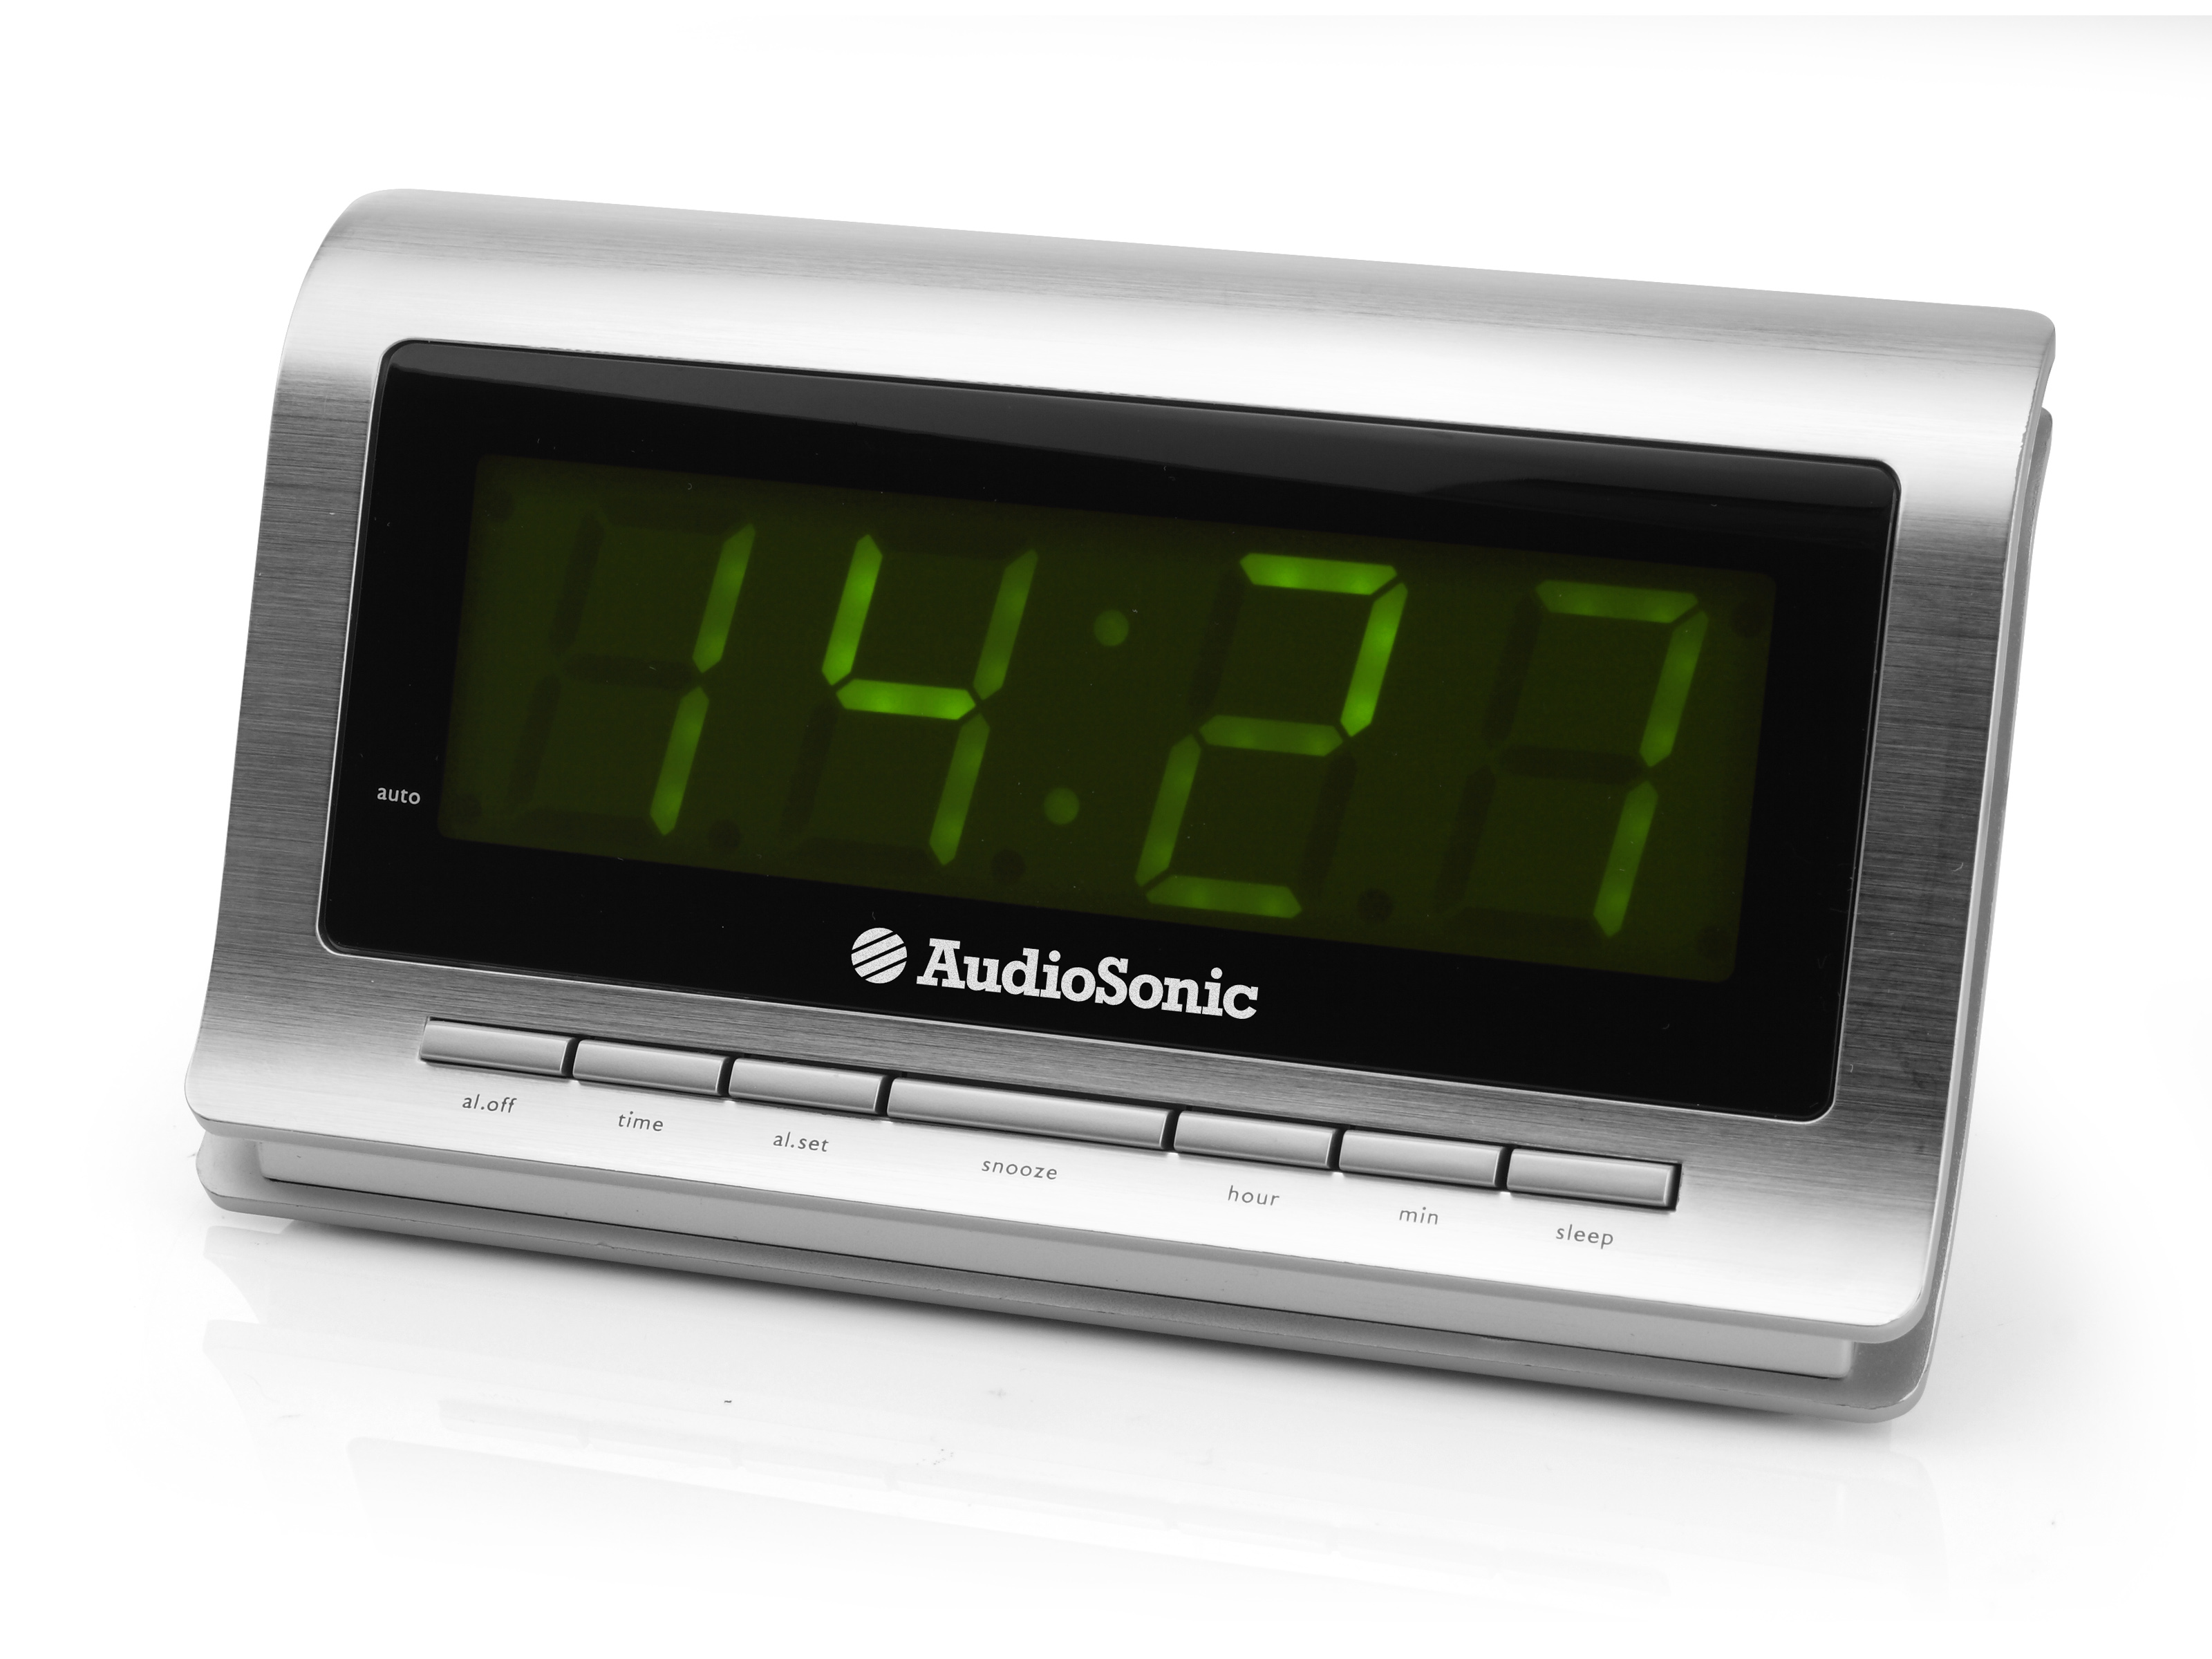 AudioSonic CL-1472 Orologio Argento radio